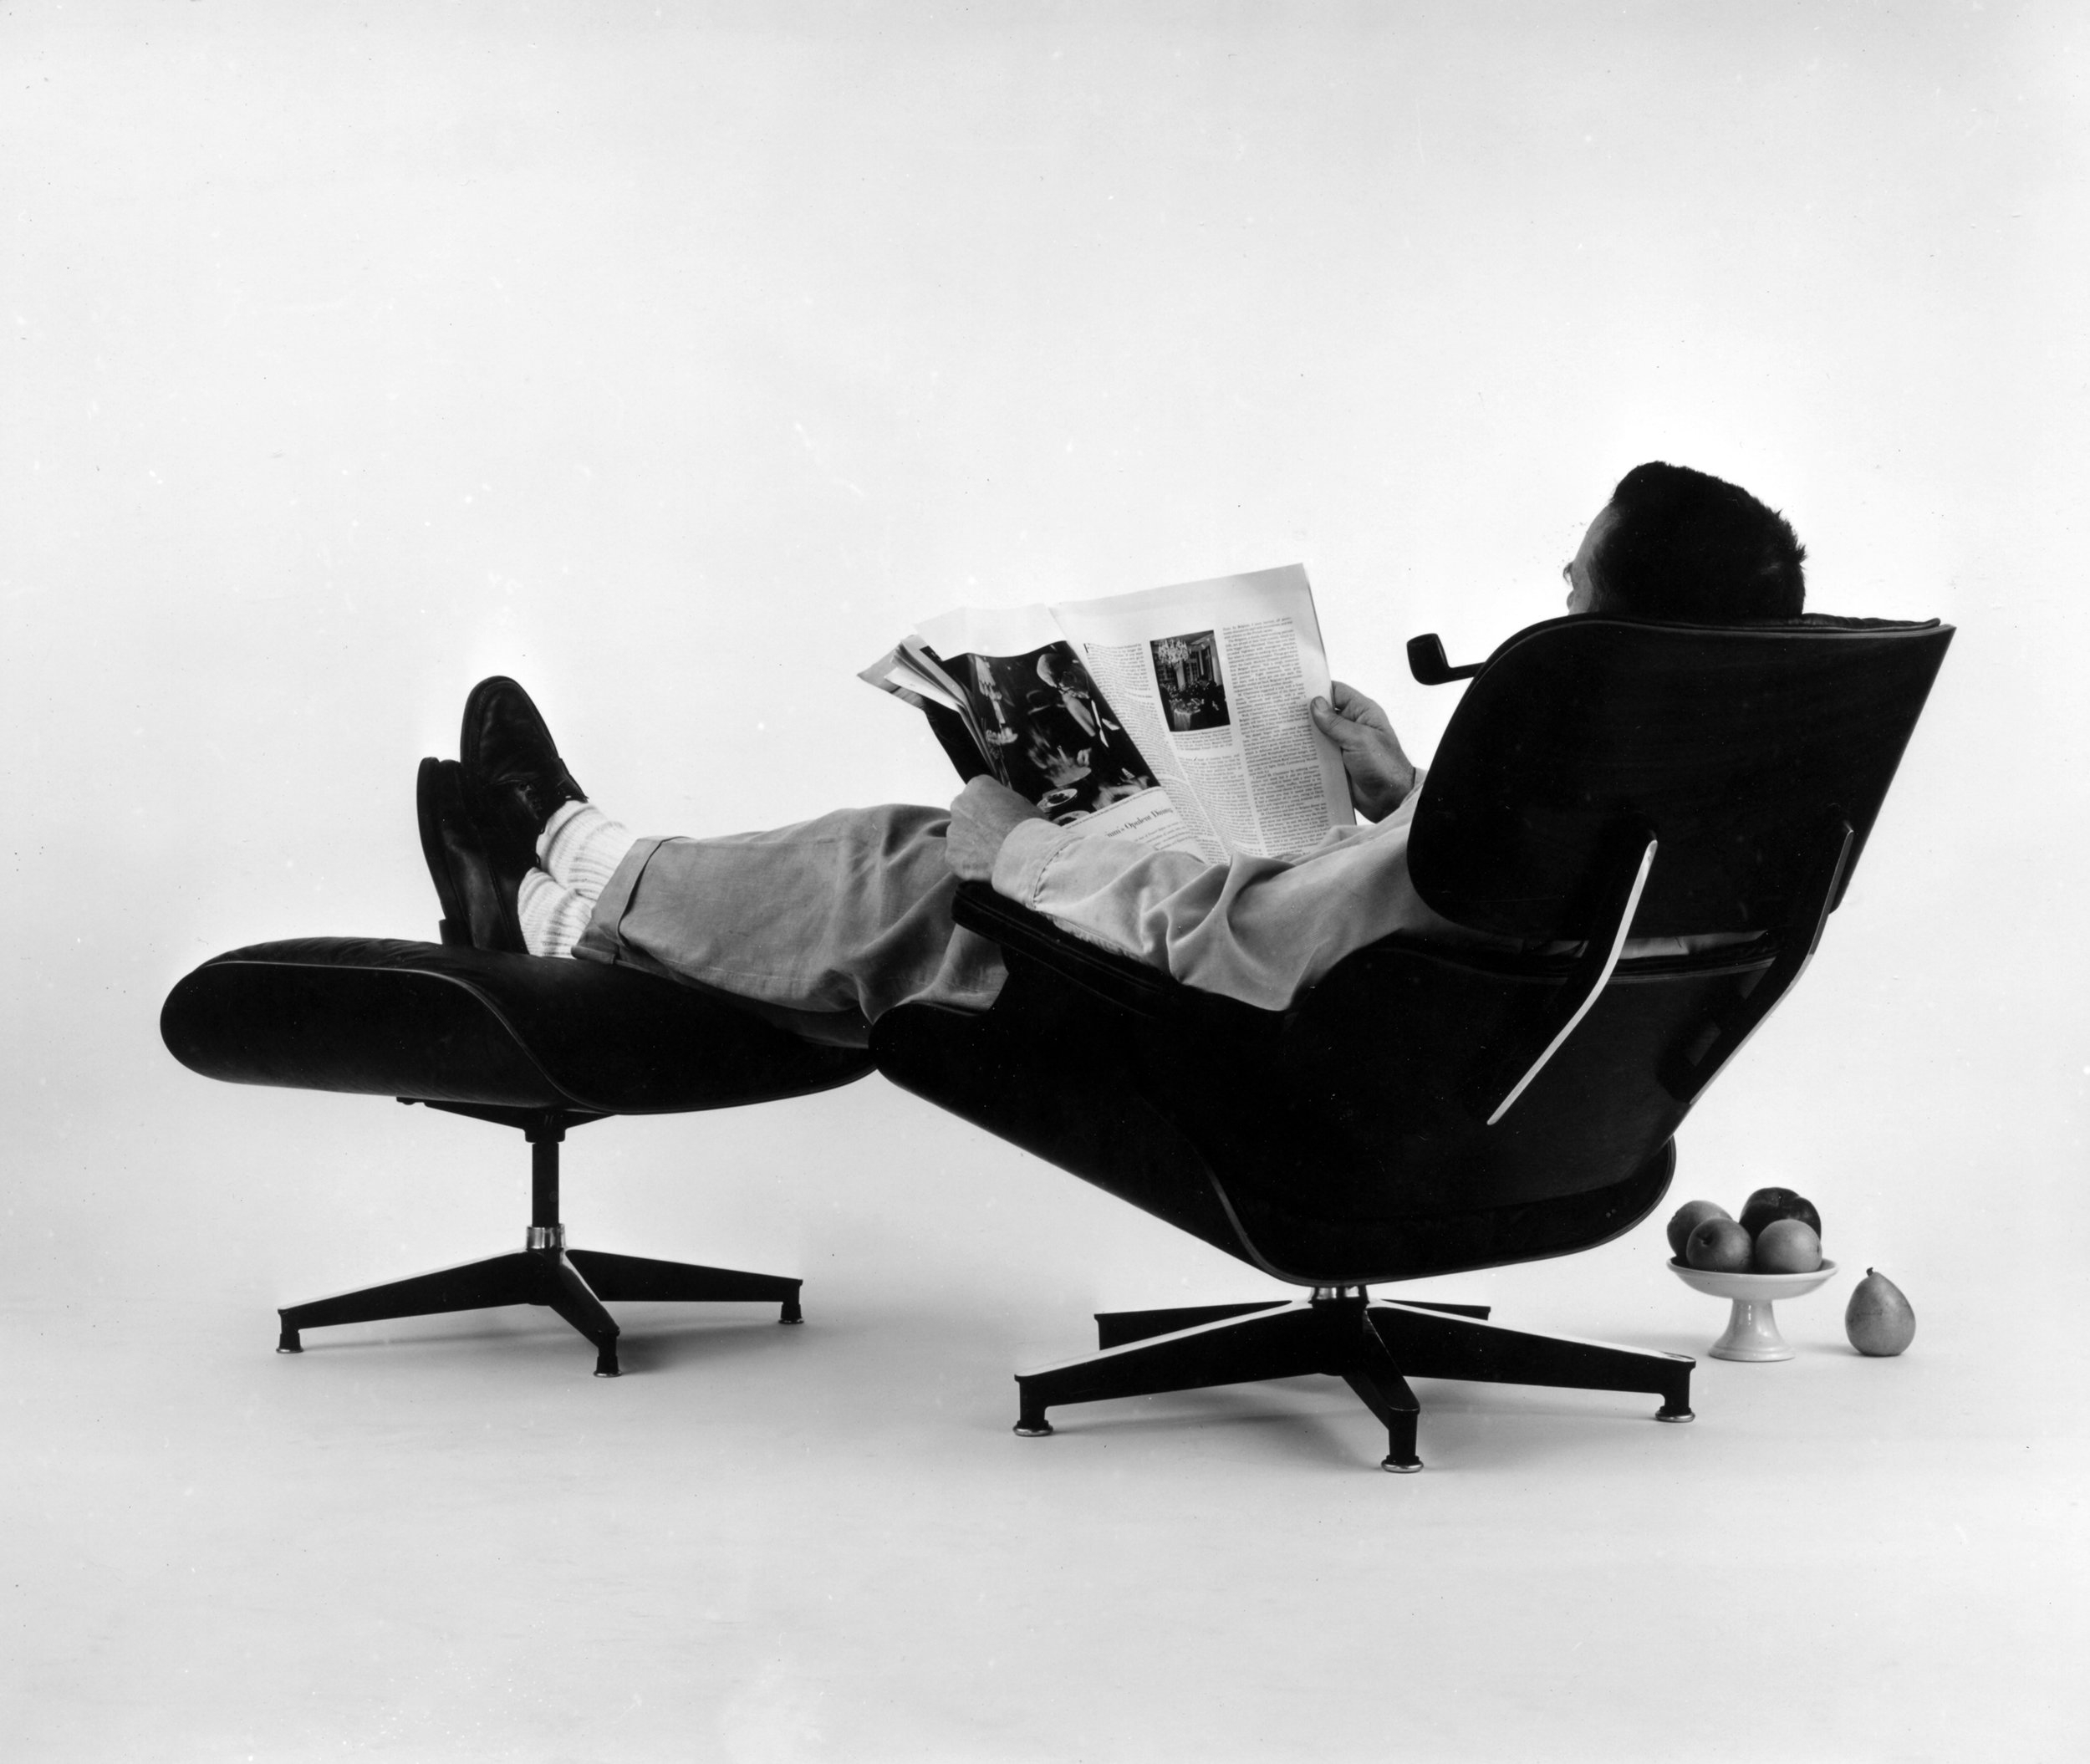 An Eames Celebration. Charles Eames posing in the Lounge Chair, photo for an advertisement, 1956.© Eames Office LLC